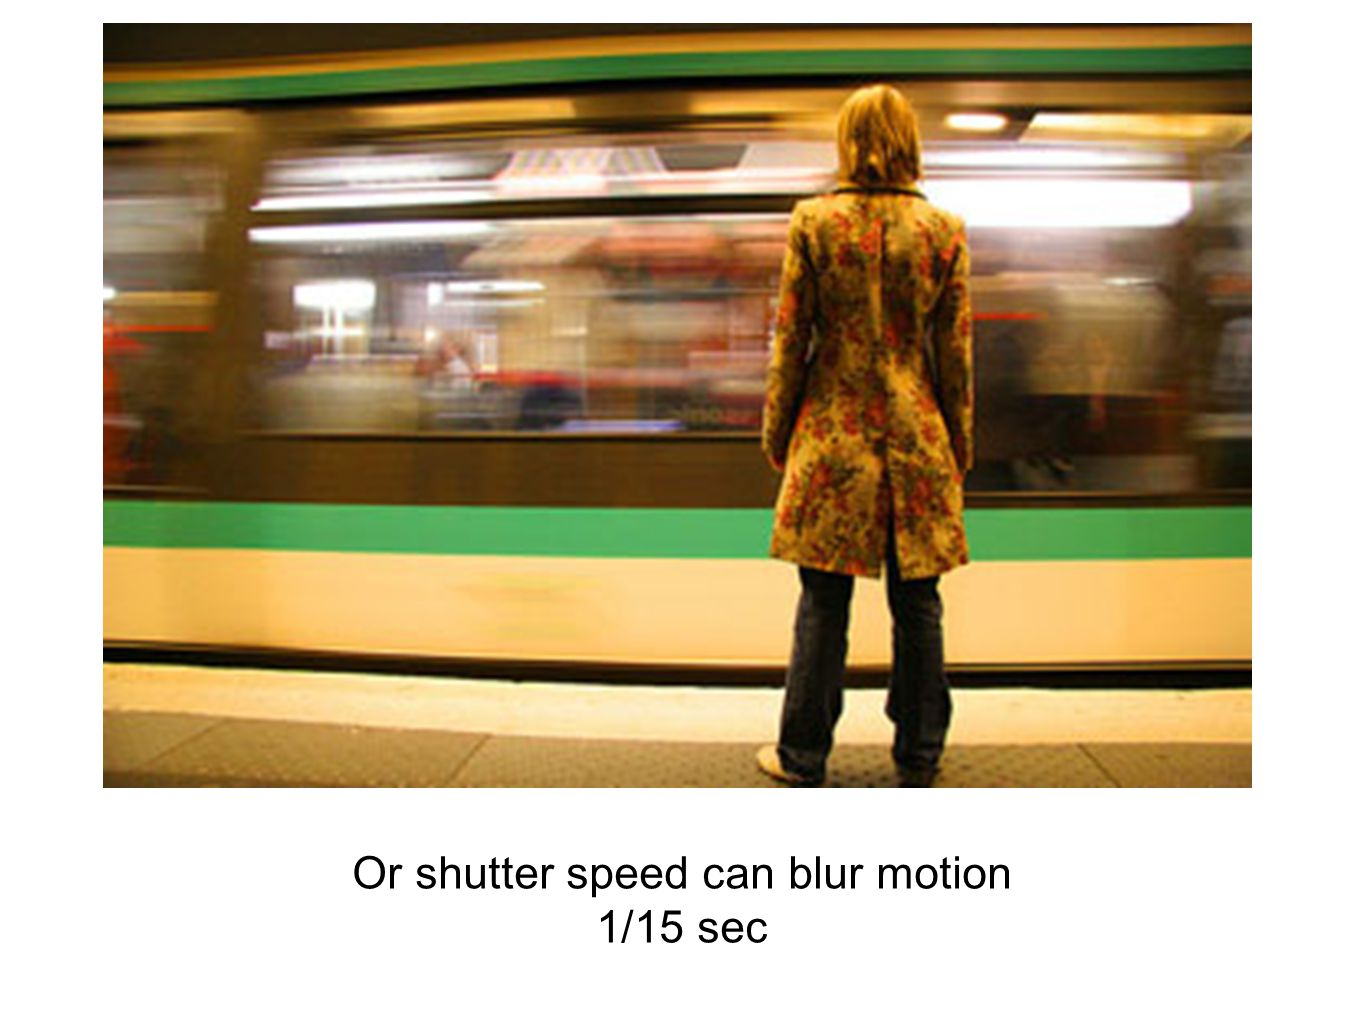 Or shutter speed can blur motion 1/15 sec